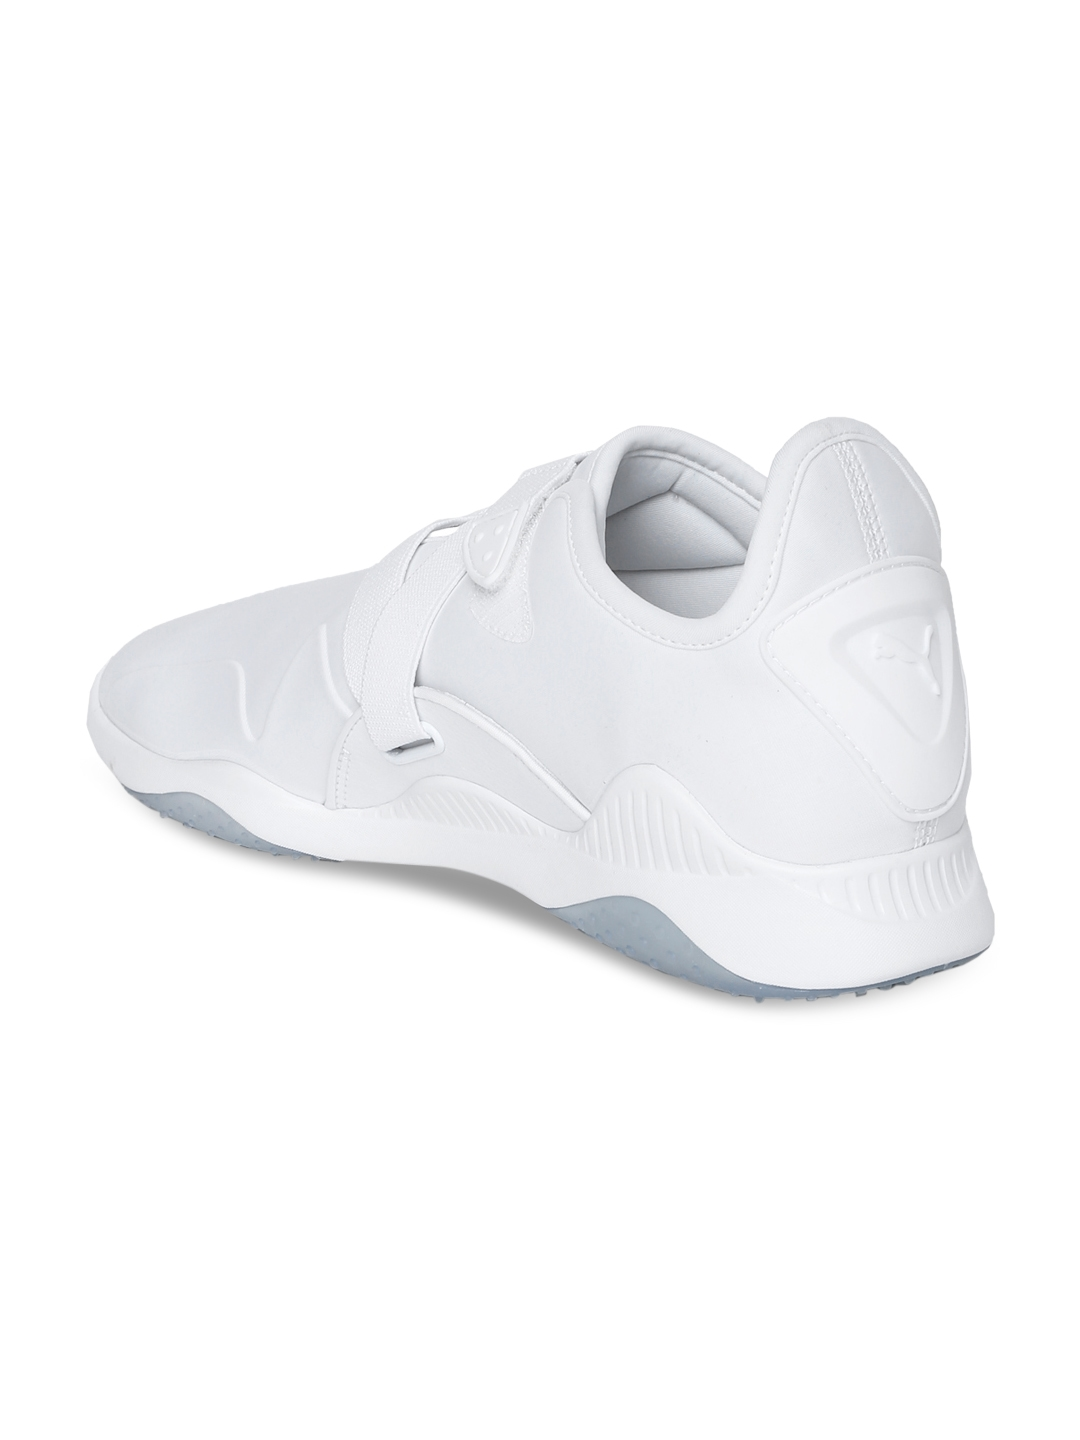 1b14b2e88287a9 Buy Puma Men White Slip On Mostro Core Tex Sneakers - Casual Shoes ...